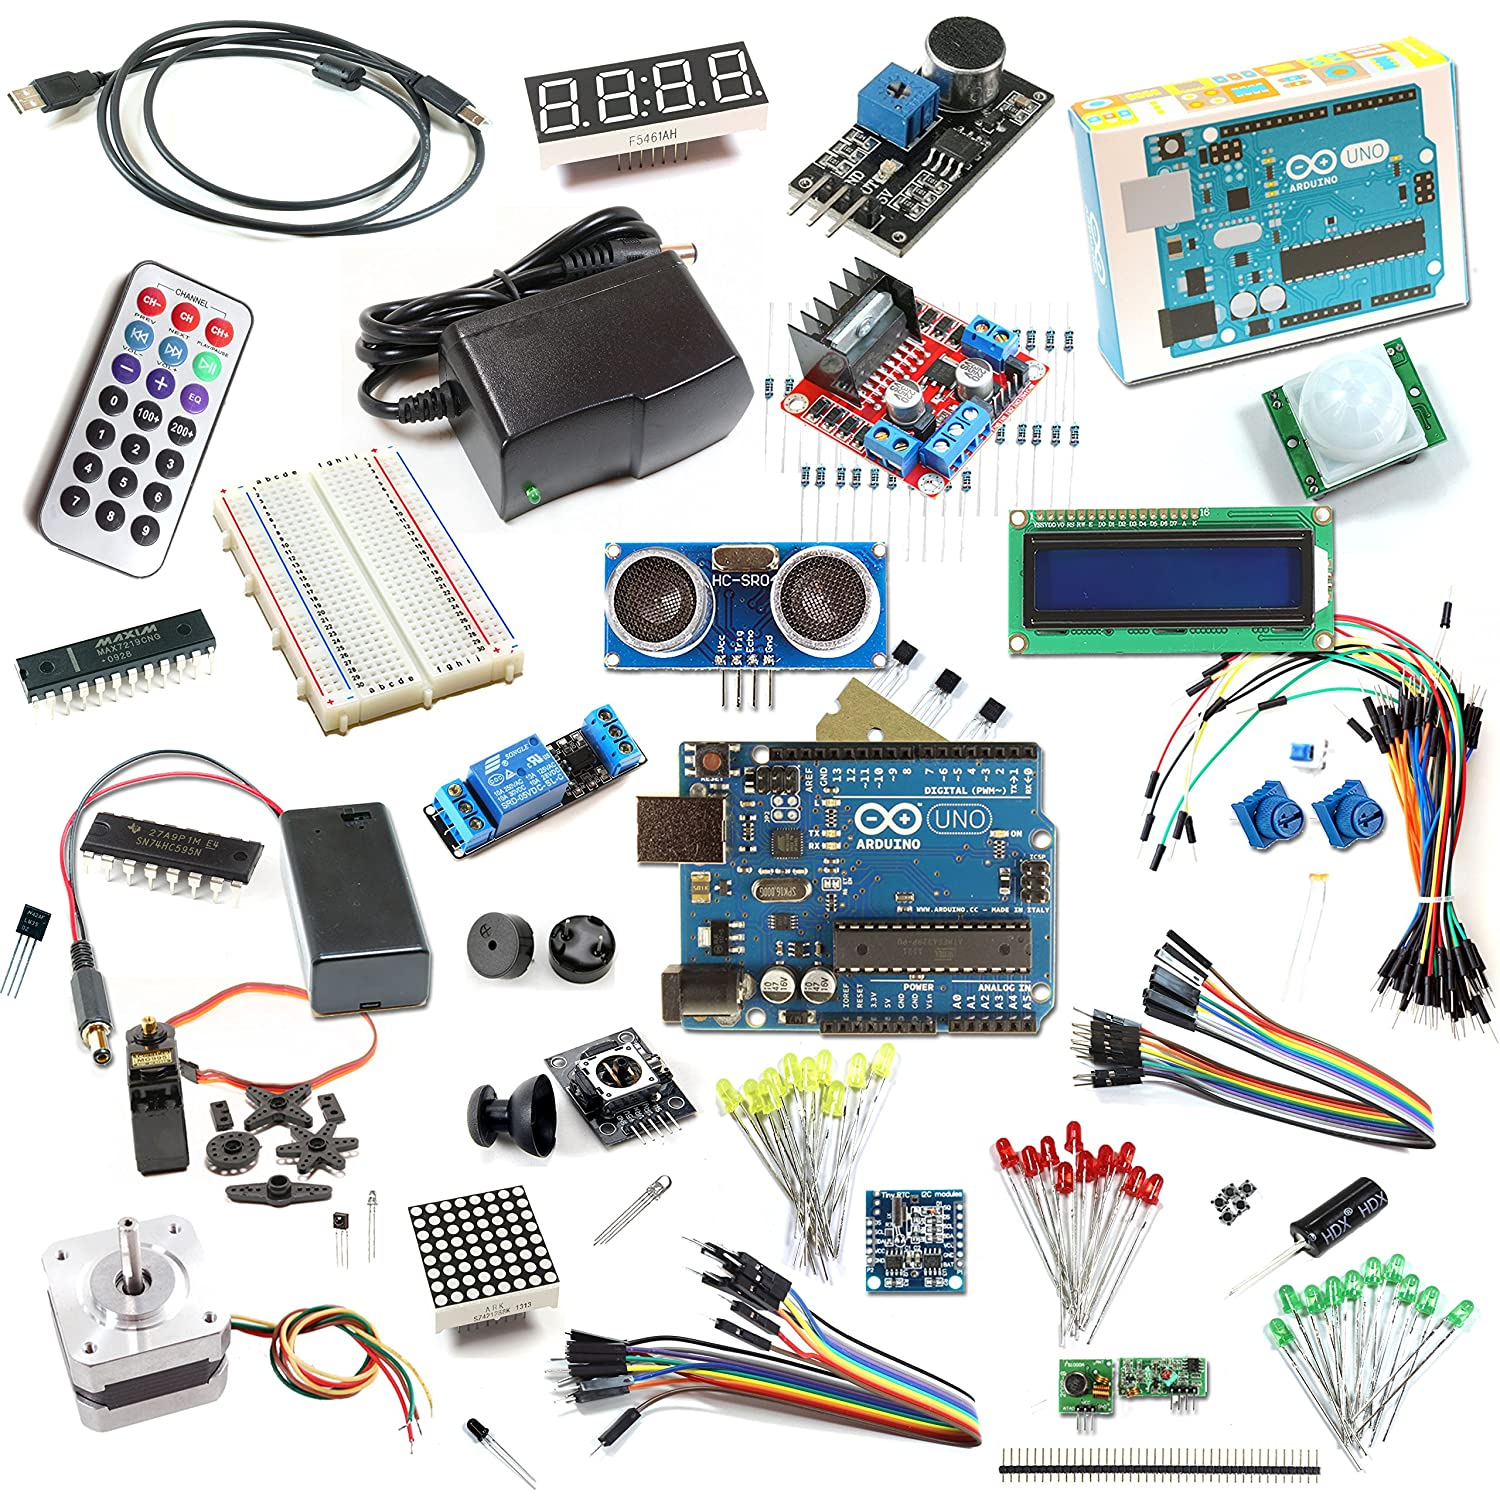 Starter Kit Deluxe With Genuine Arduino Uno R3 Amplifier The Digital Potentiometer Controlled By Computers Accessories